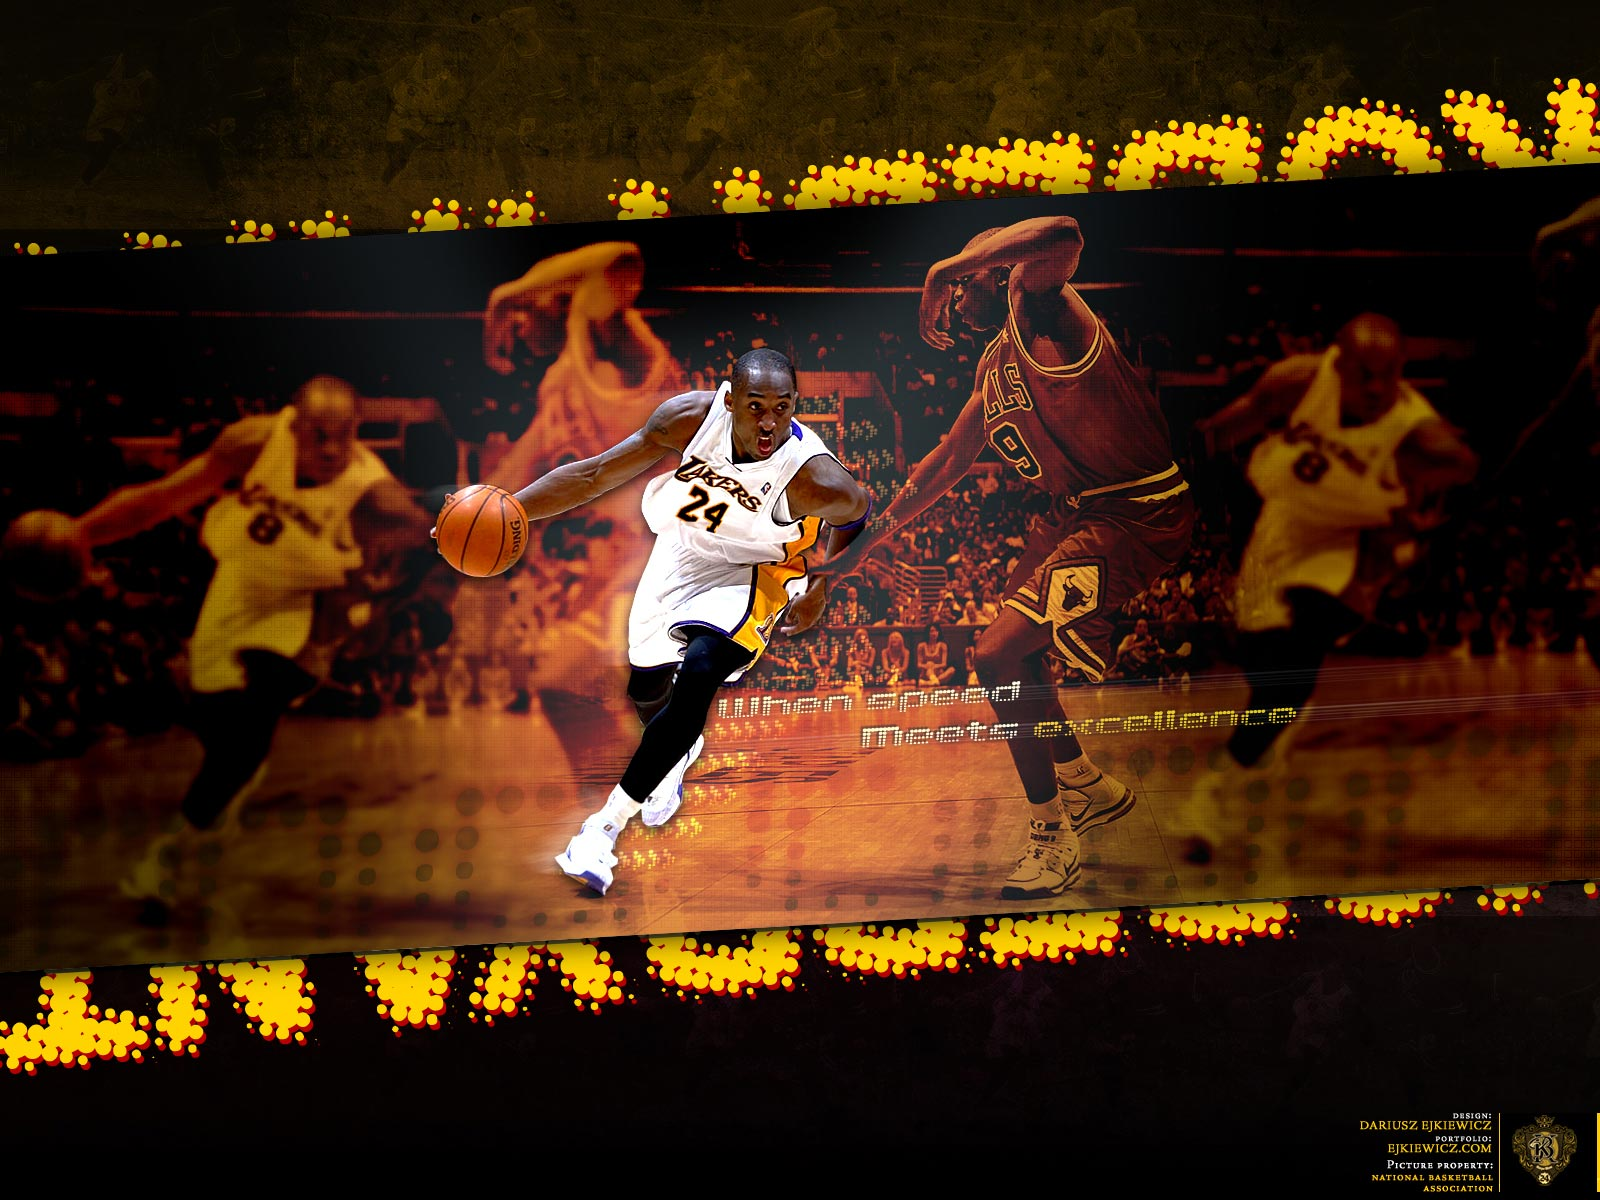 Best Collection Of Kobe Bryant Wallpapers Ii Thenbazone Com